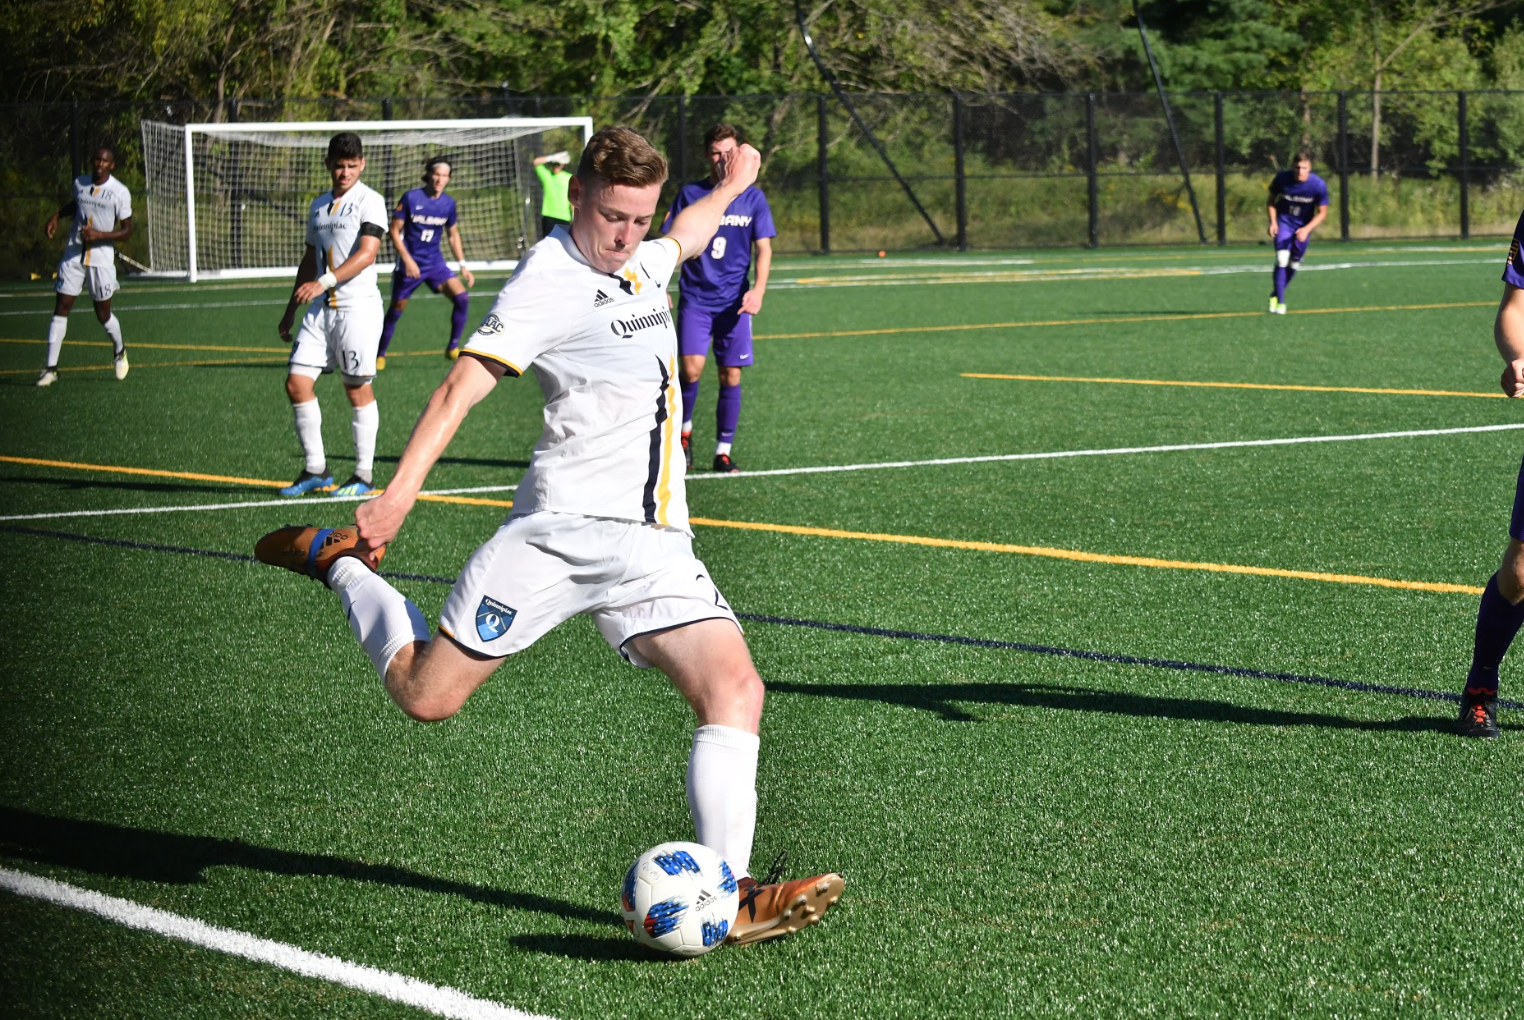 Quinnipiac men's soccer outlasts Albany, 2-1, in overtime